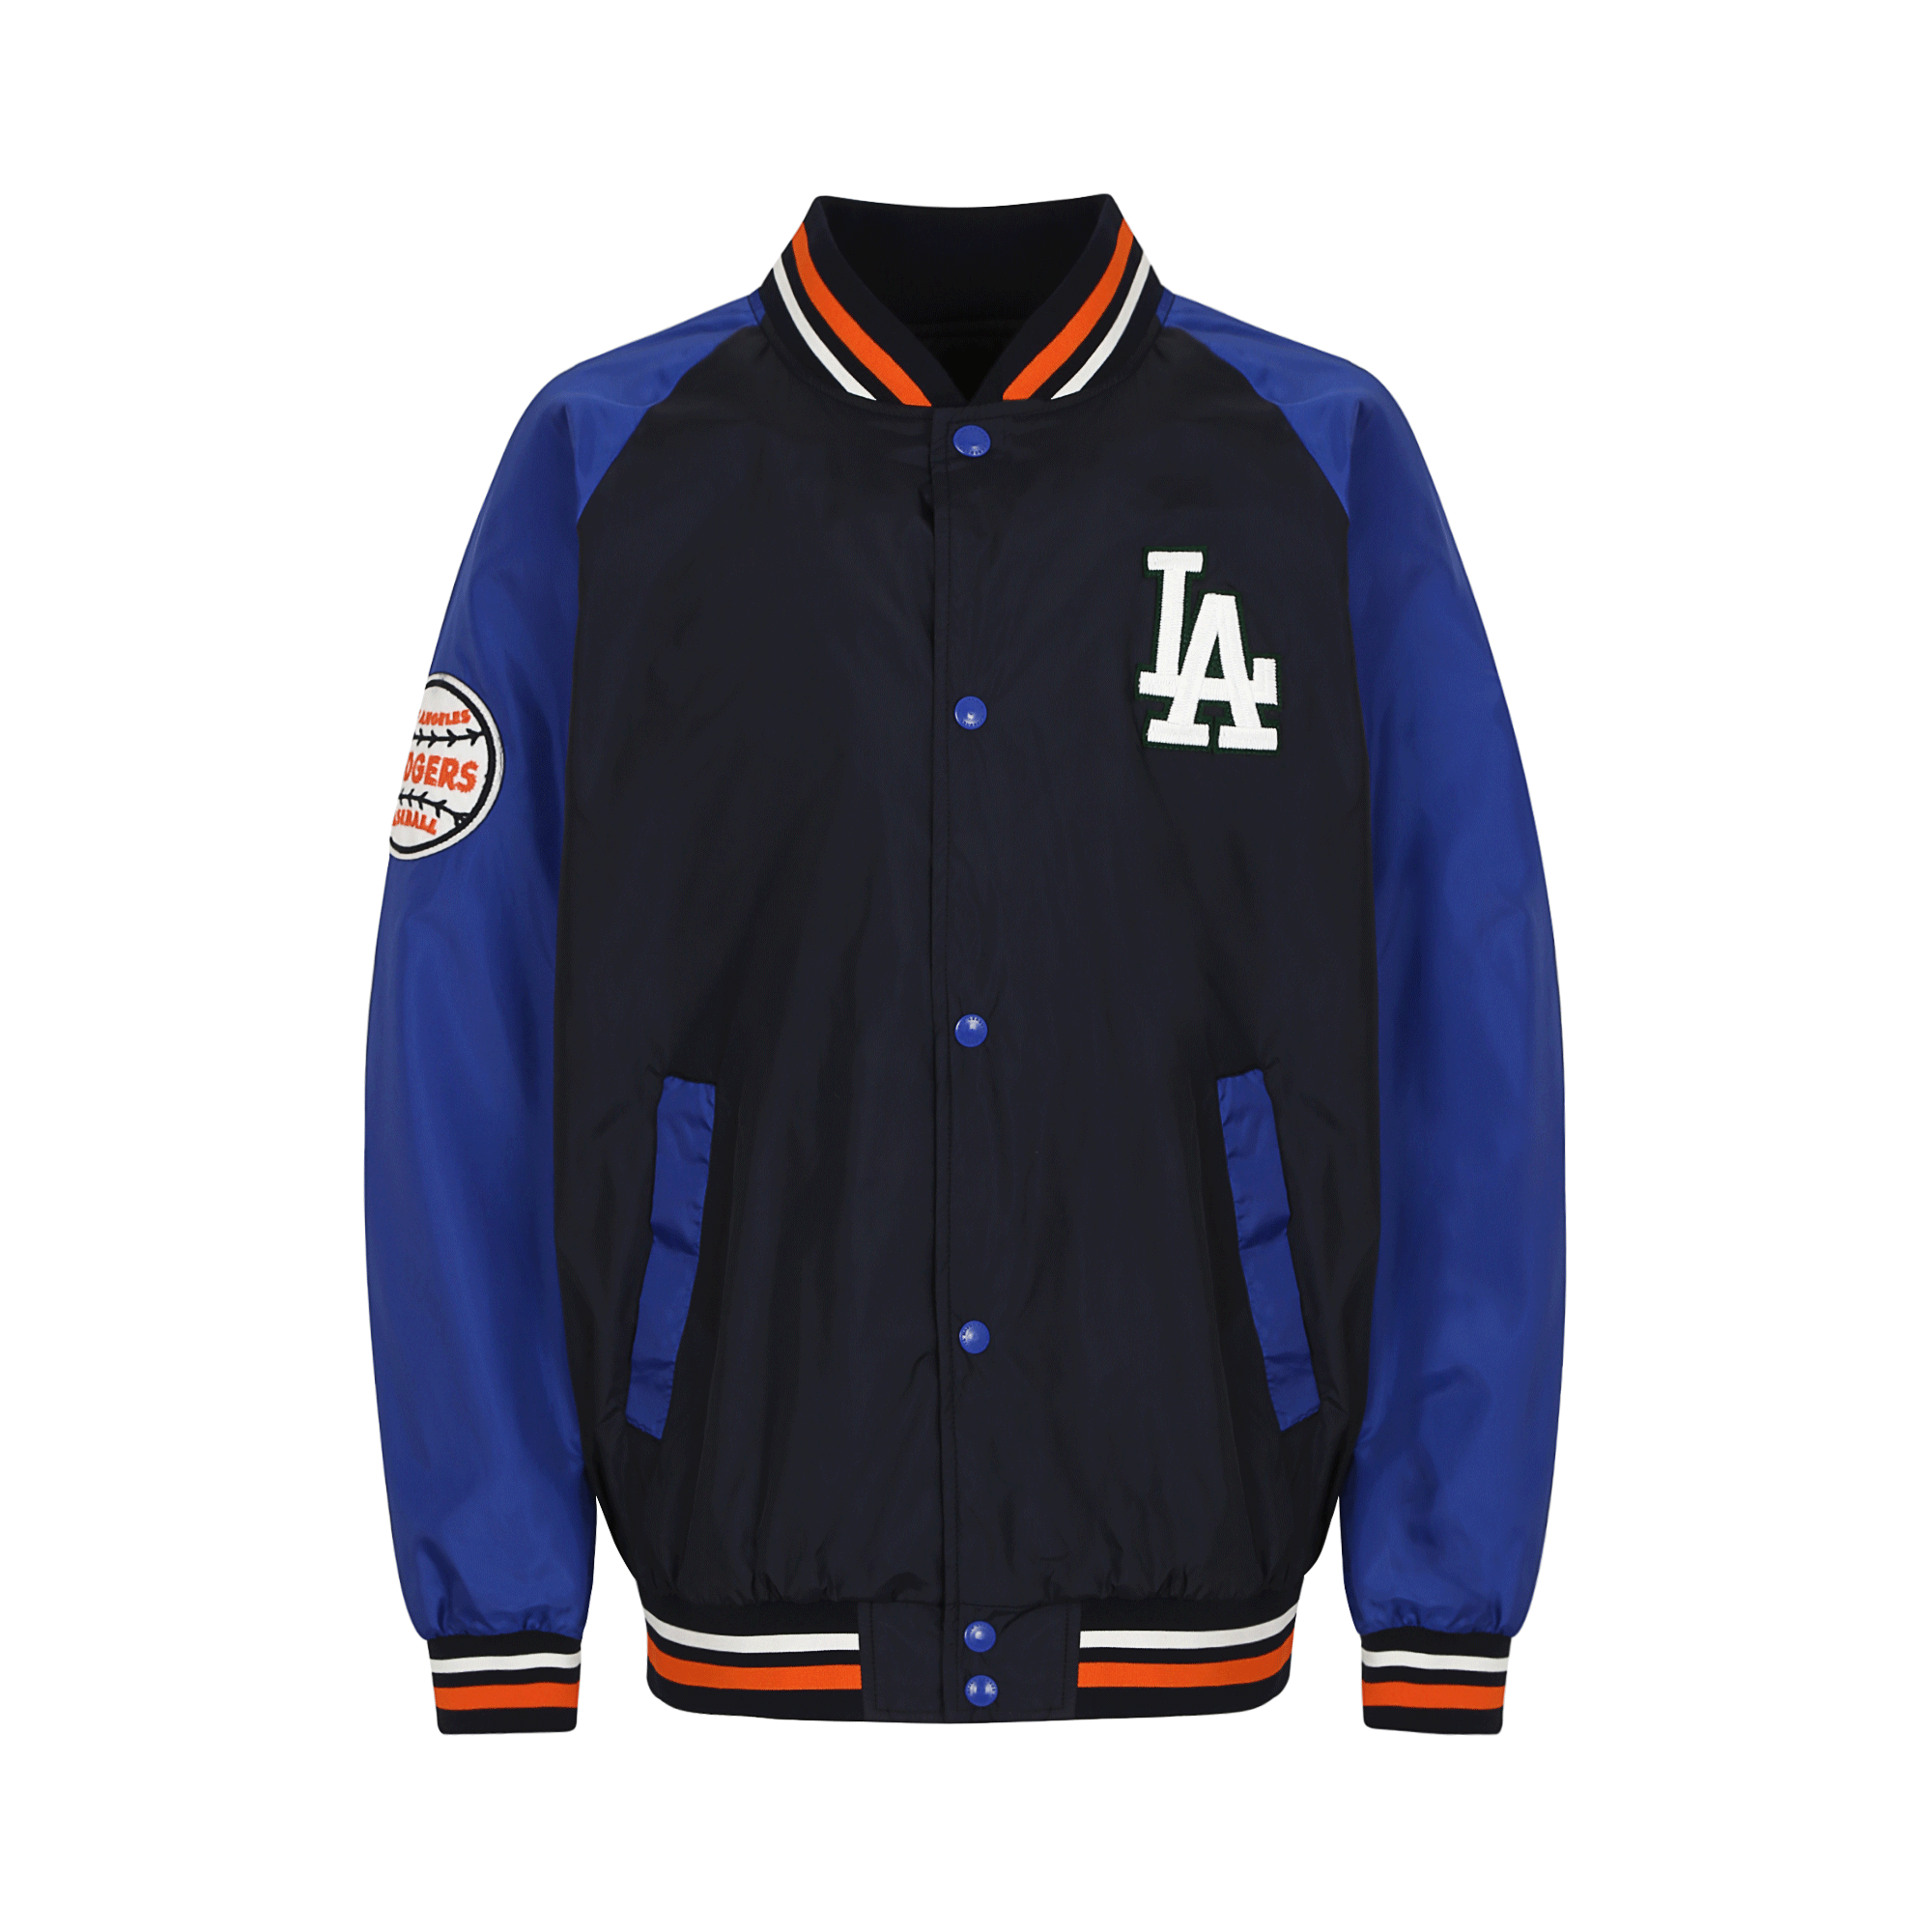 LA DODGERS BASEBALL WINDBREAKER